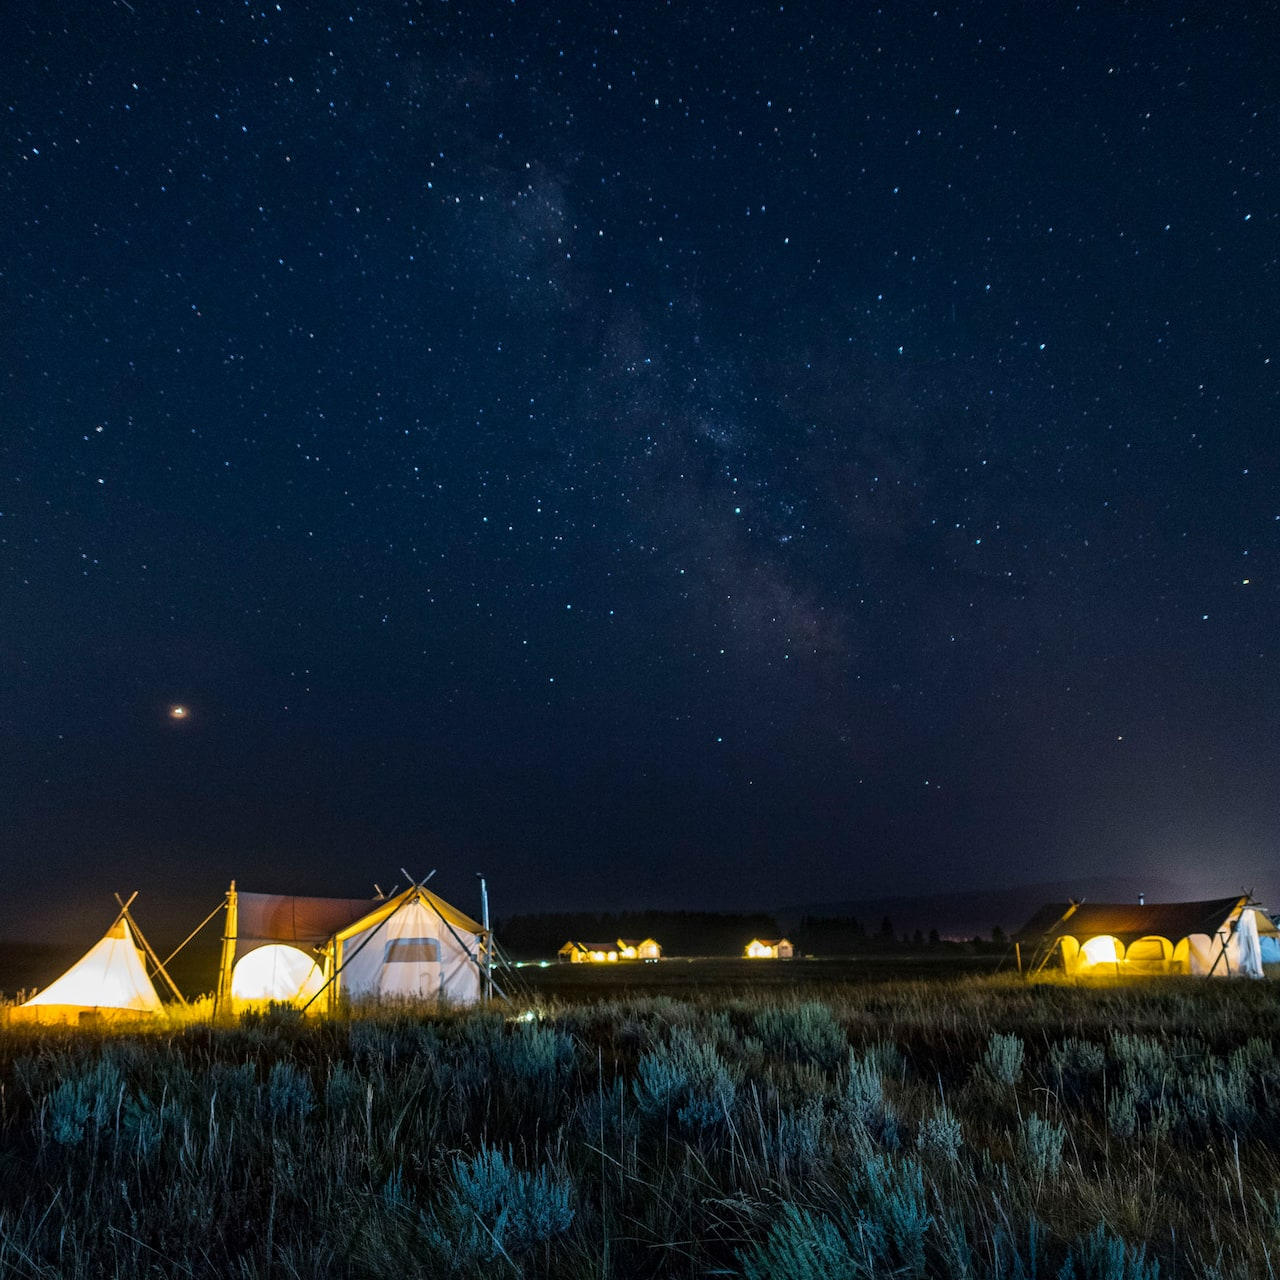 Several tents in a grassy plain lit up beneath a starry nighttime sky